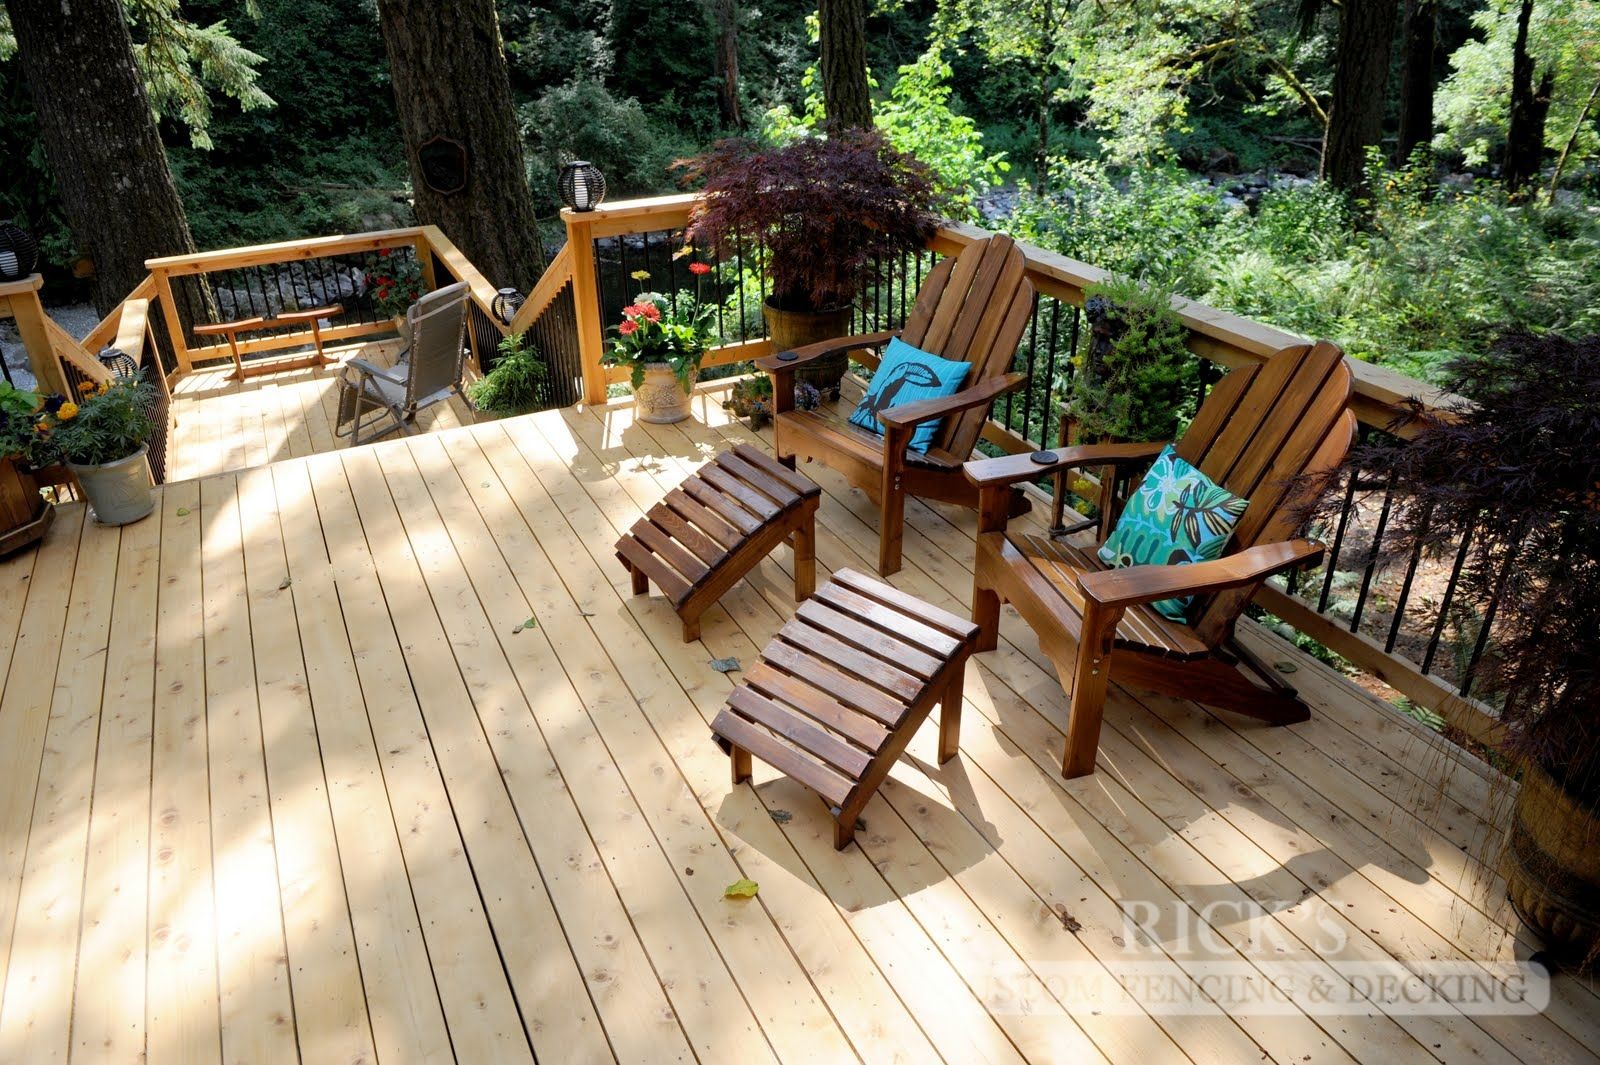 1054 - Port Orford Cedar Decking with Handrail